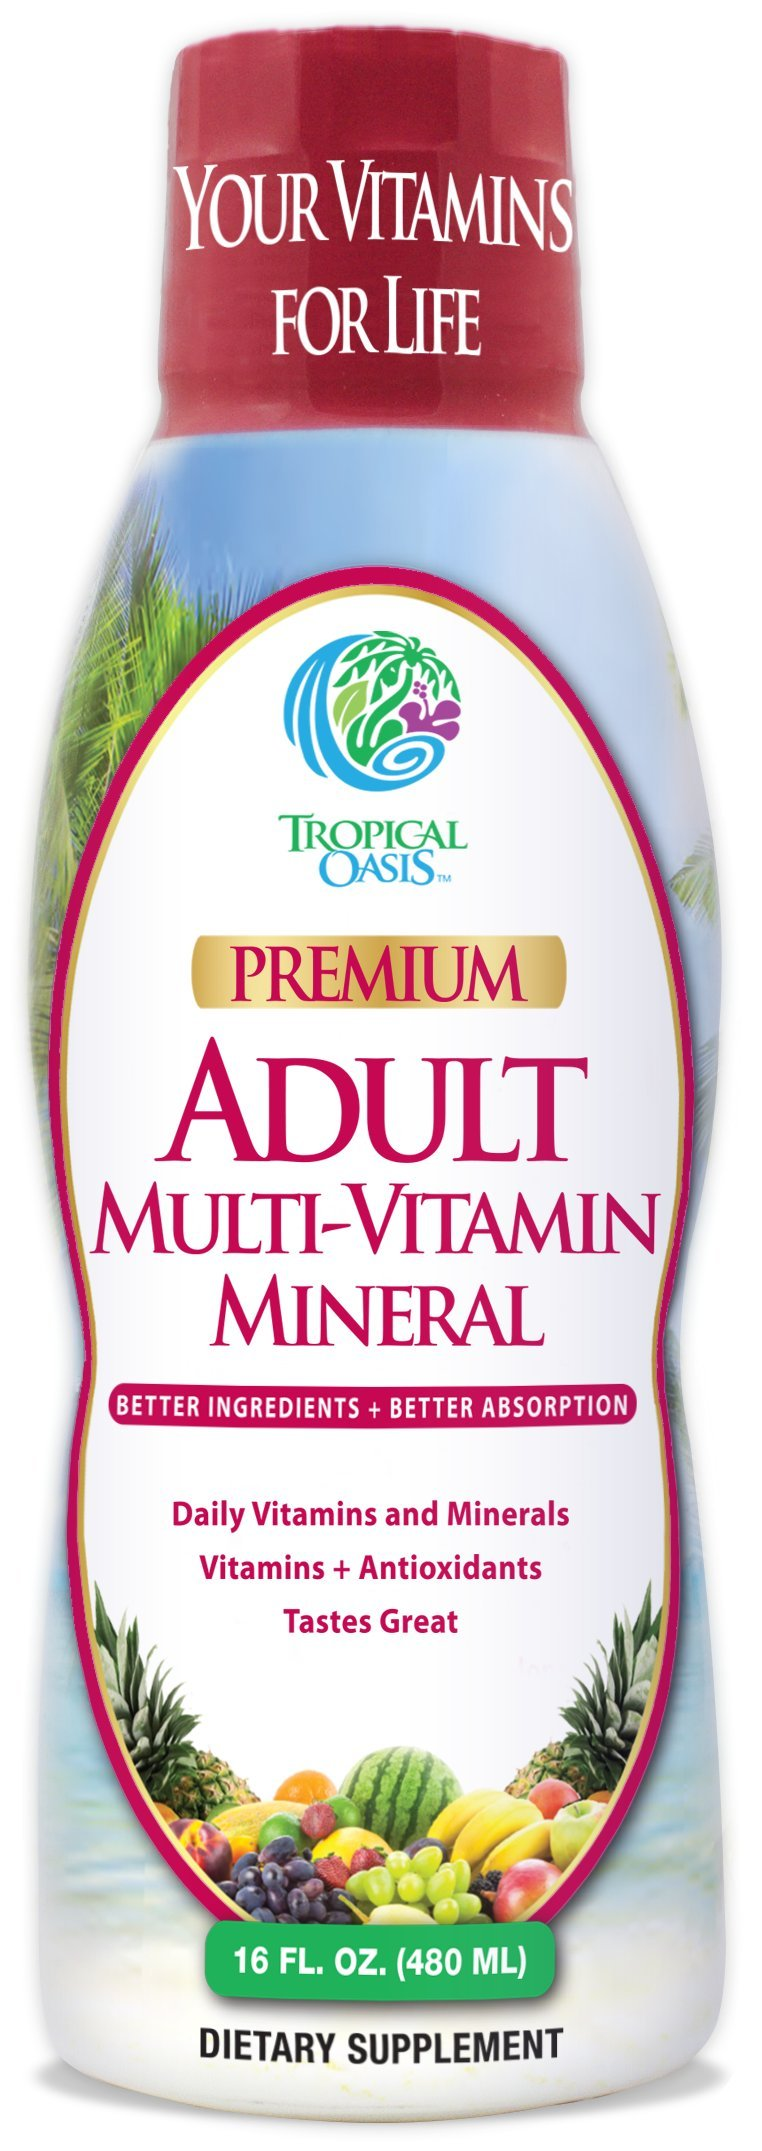 Tropical Oasis Adult Liquid Multivitamin -Liquid Multi-Vitamin and Mineral Supplement with 125 Total Nutrients including; 85 Vitamins & Minerals, 23 Amino Acids, and 18 Herbs -- 16 fl oz, 32 serv